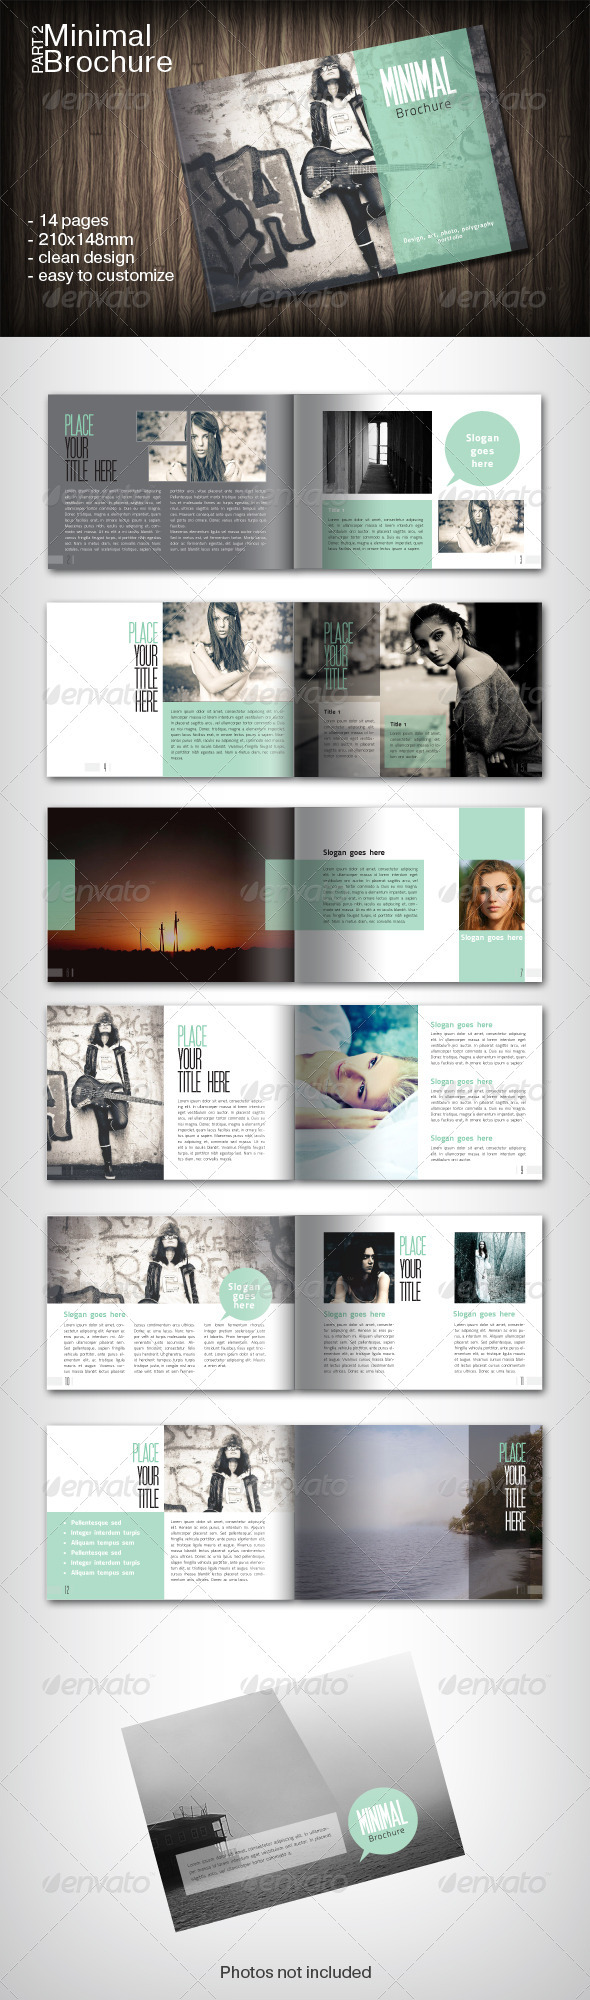 GraphicRiver Minimal Brochure Part 2 2718085